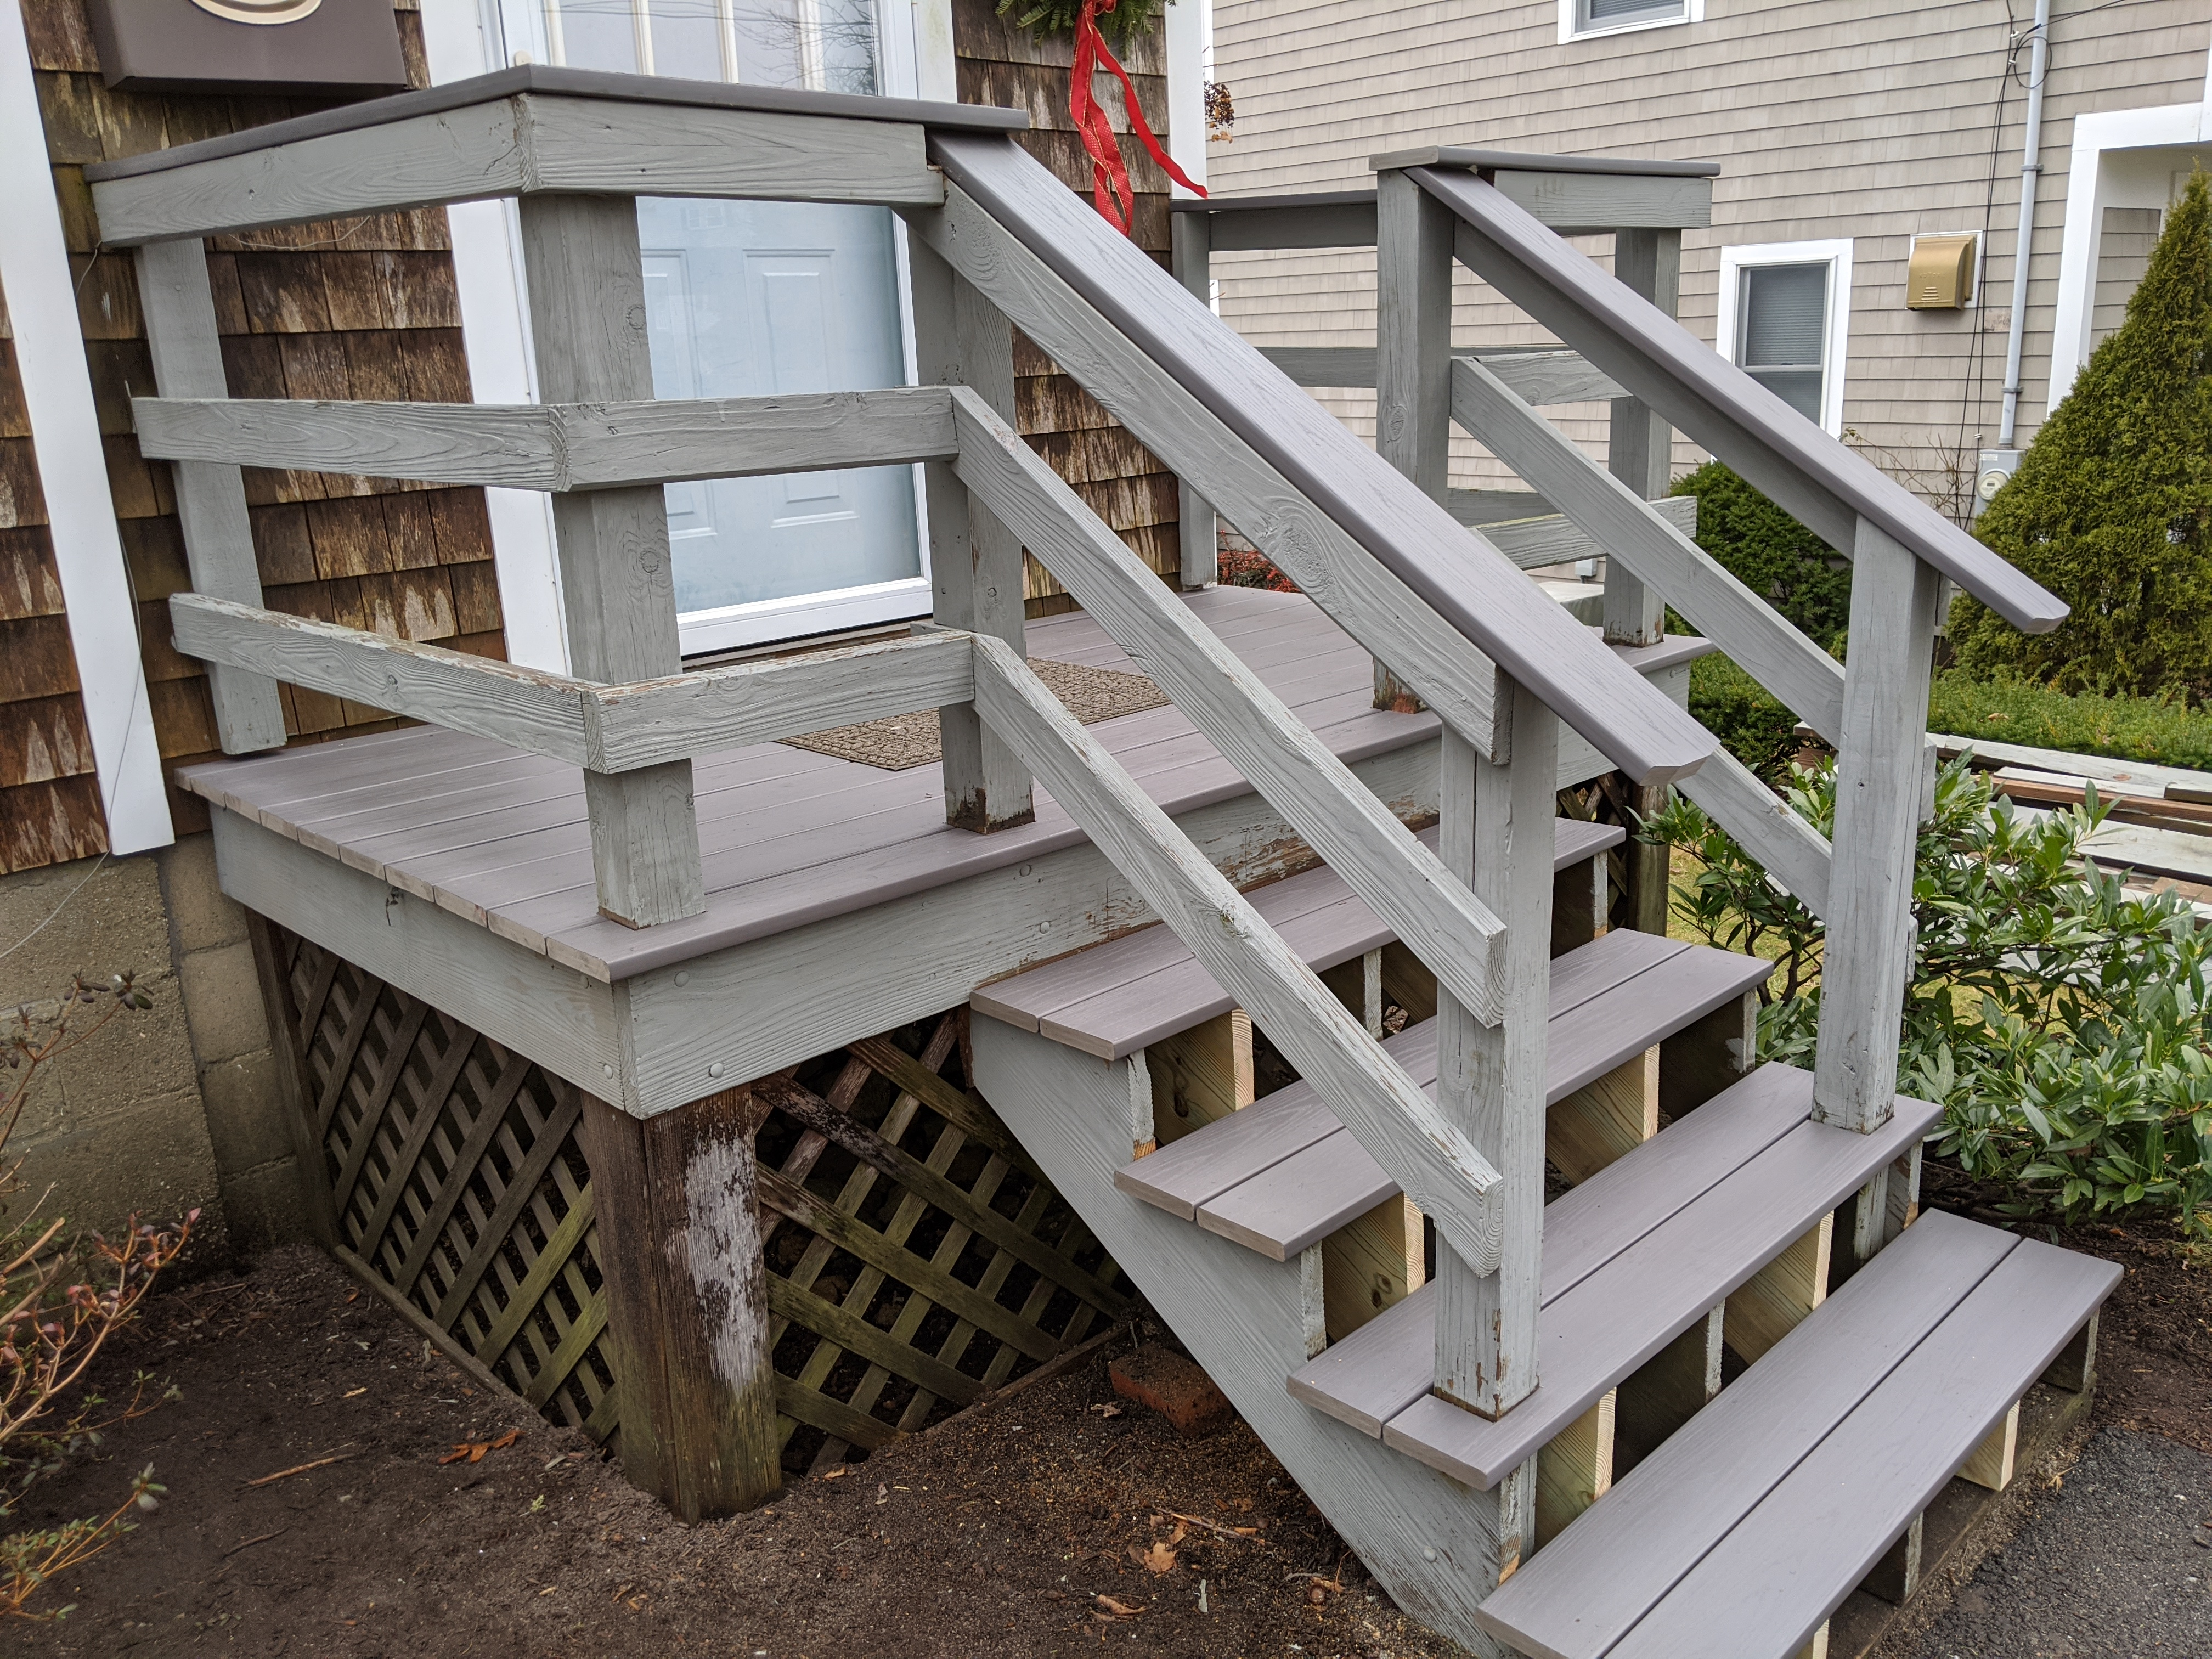 Beantown Azek Deck, Buzzards Bay